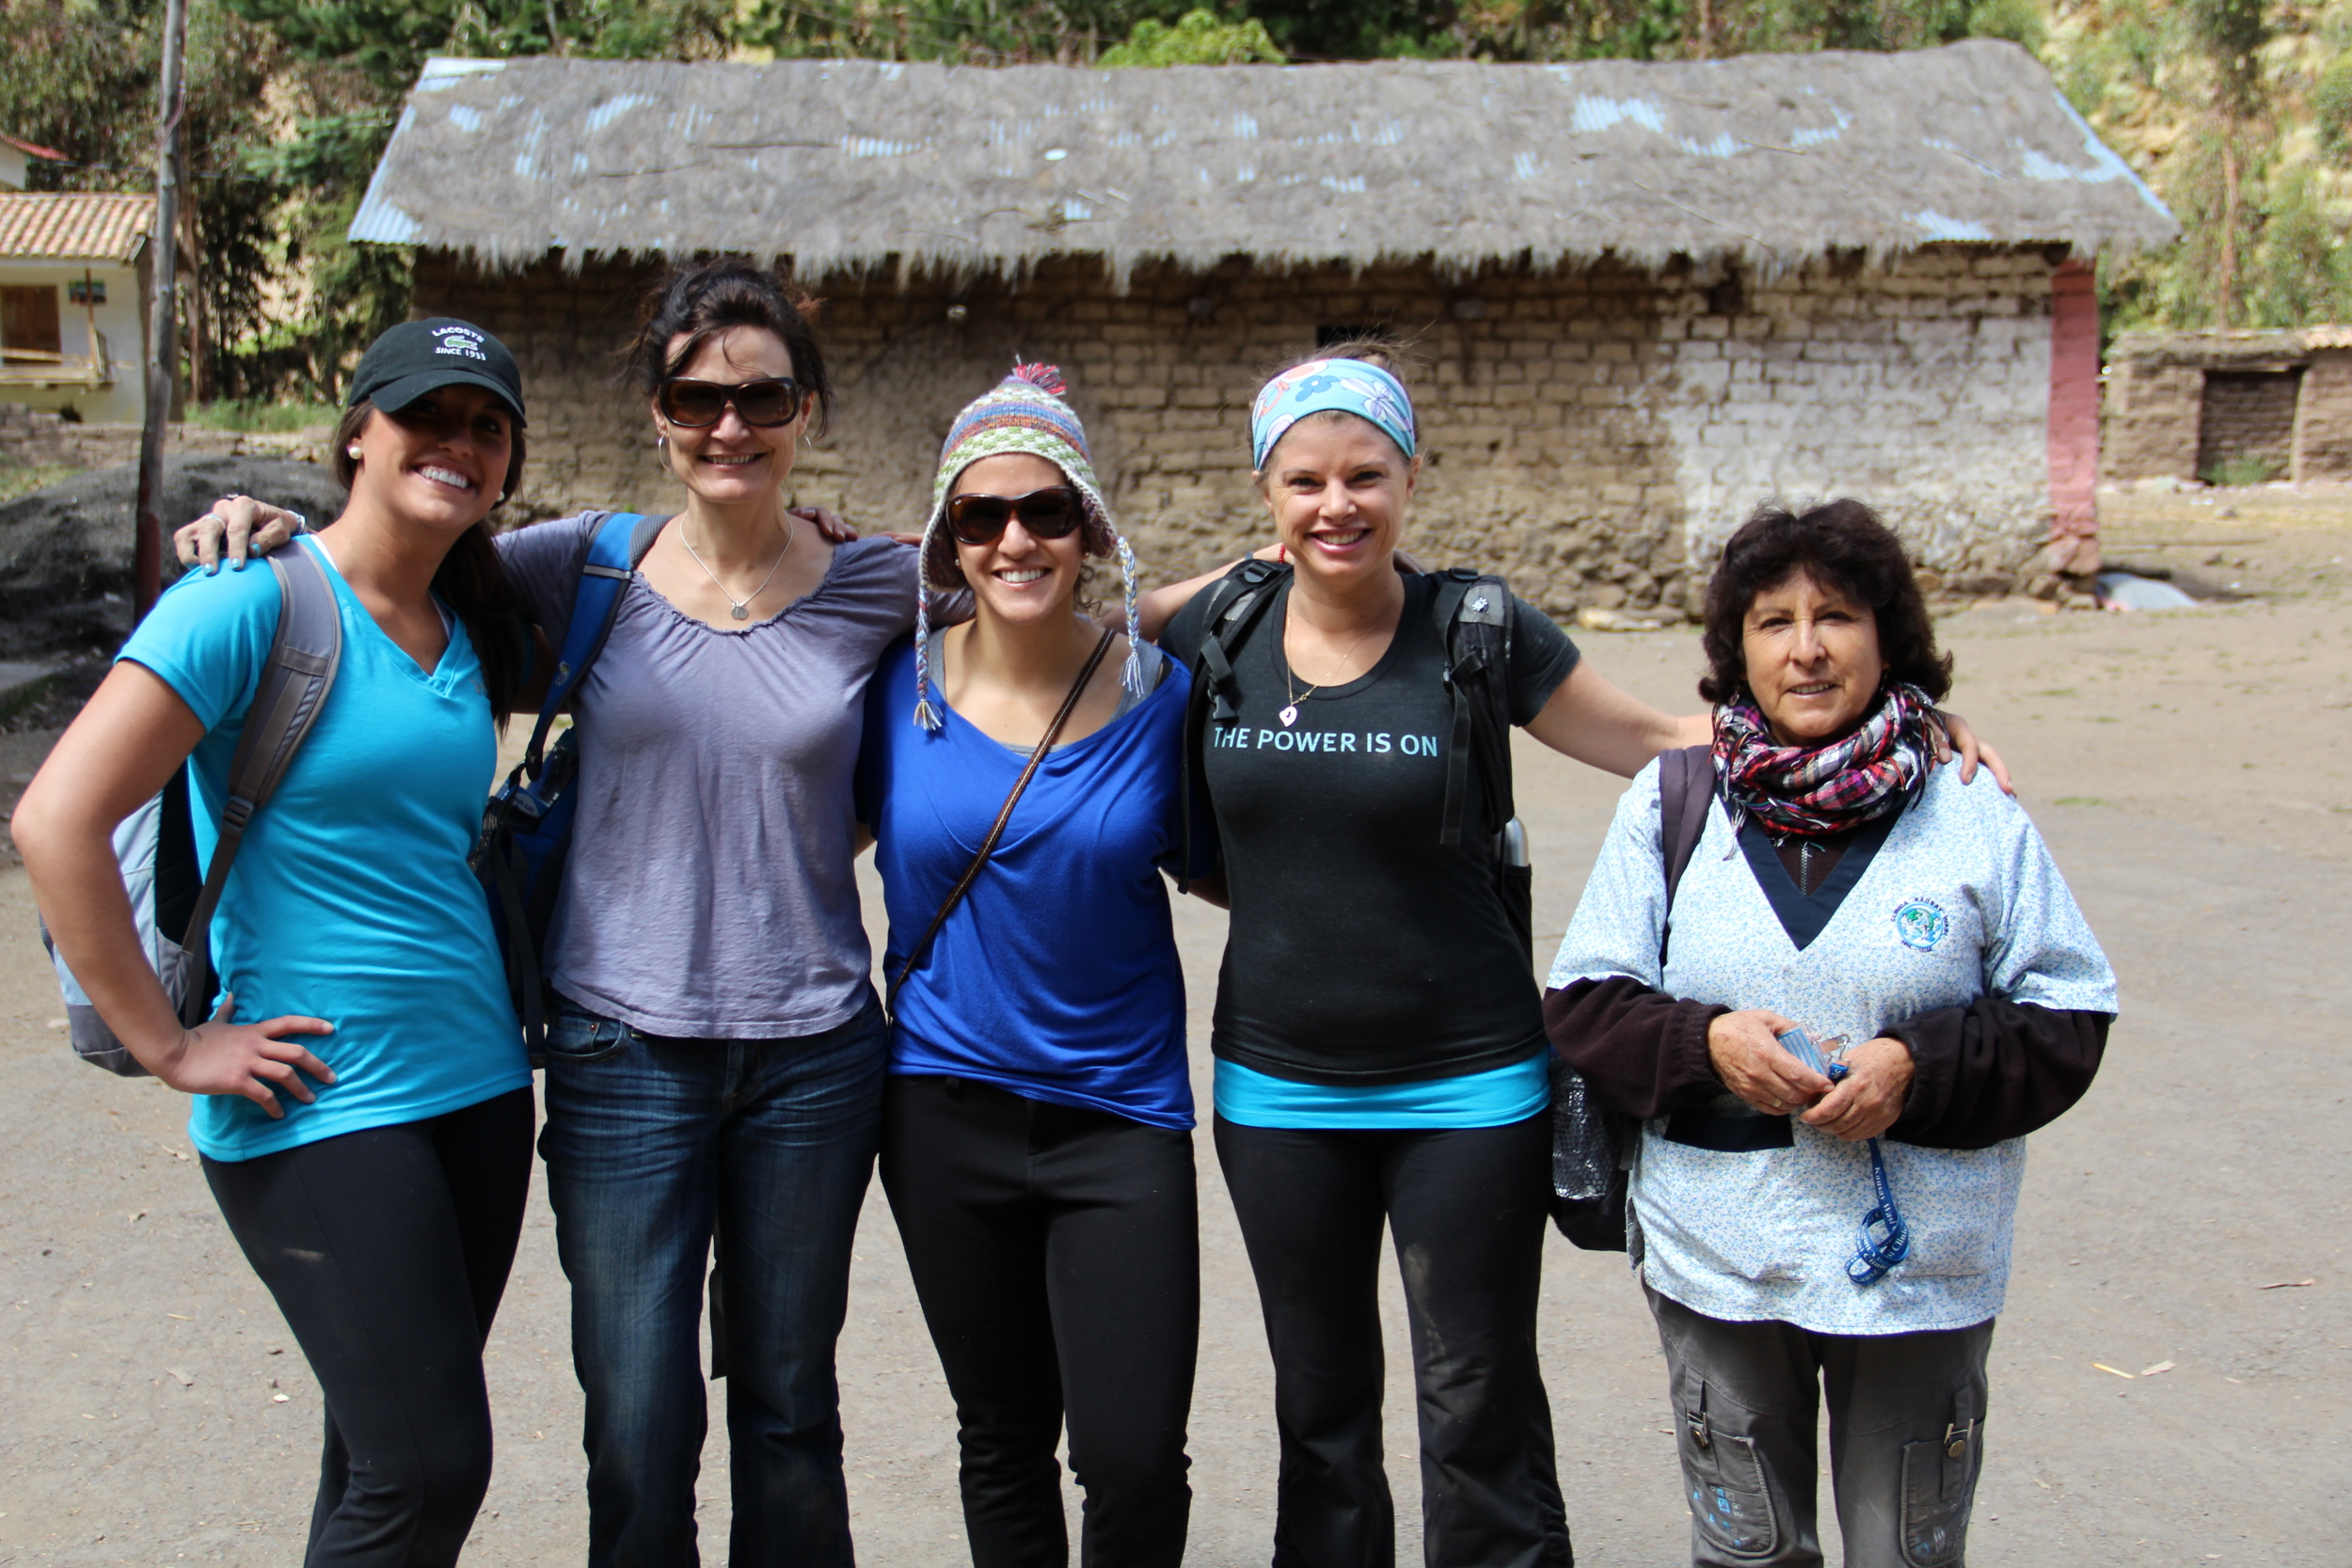 Jeni standing second from the left while on location serving children at a school in Peru, one of the rare photos she is actually in from that trip in 2013!